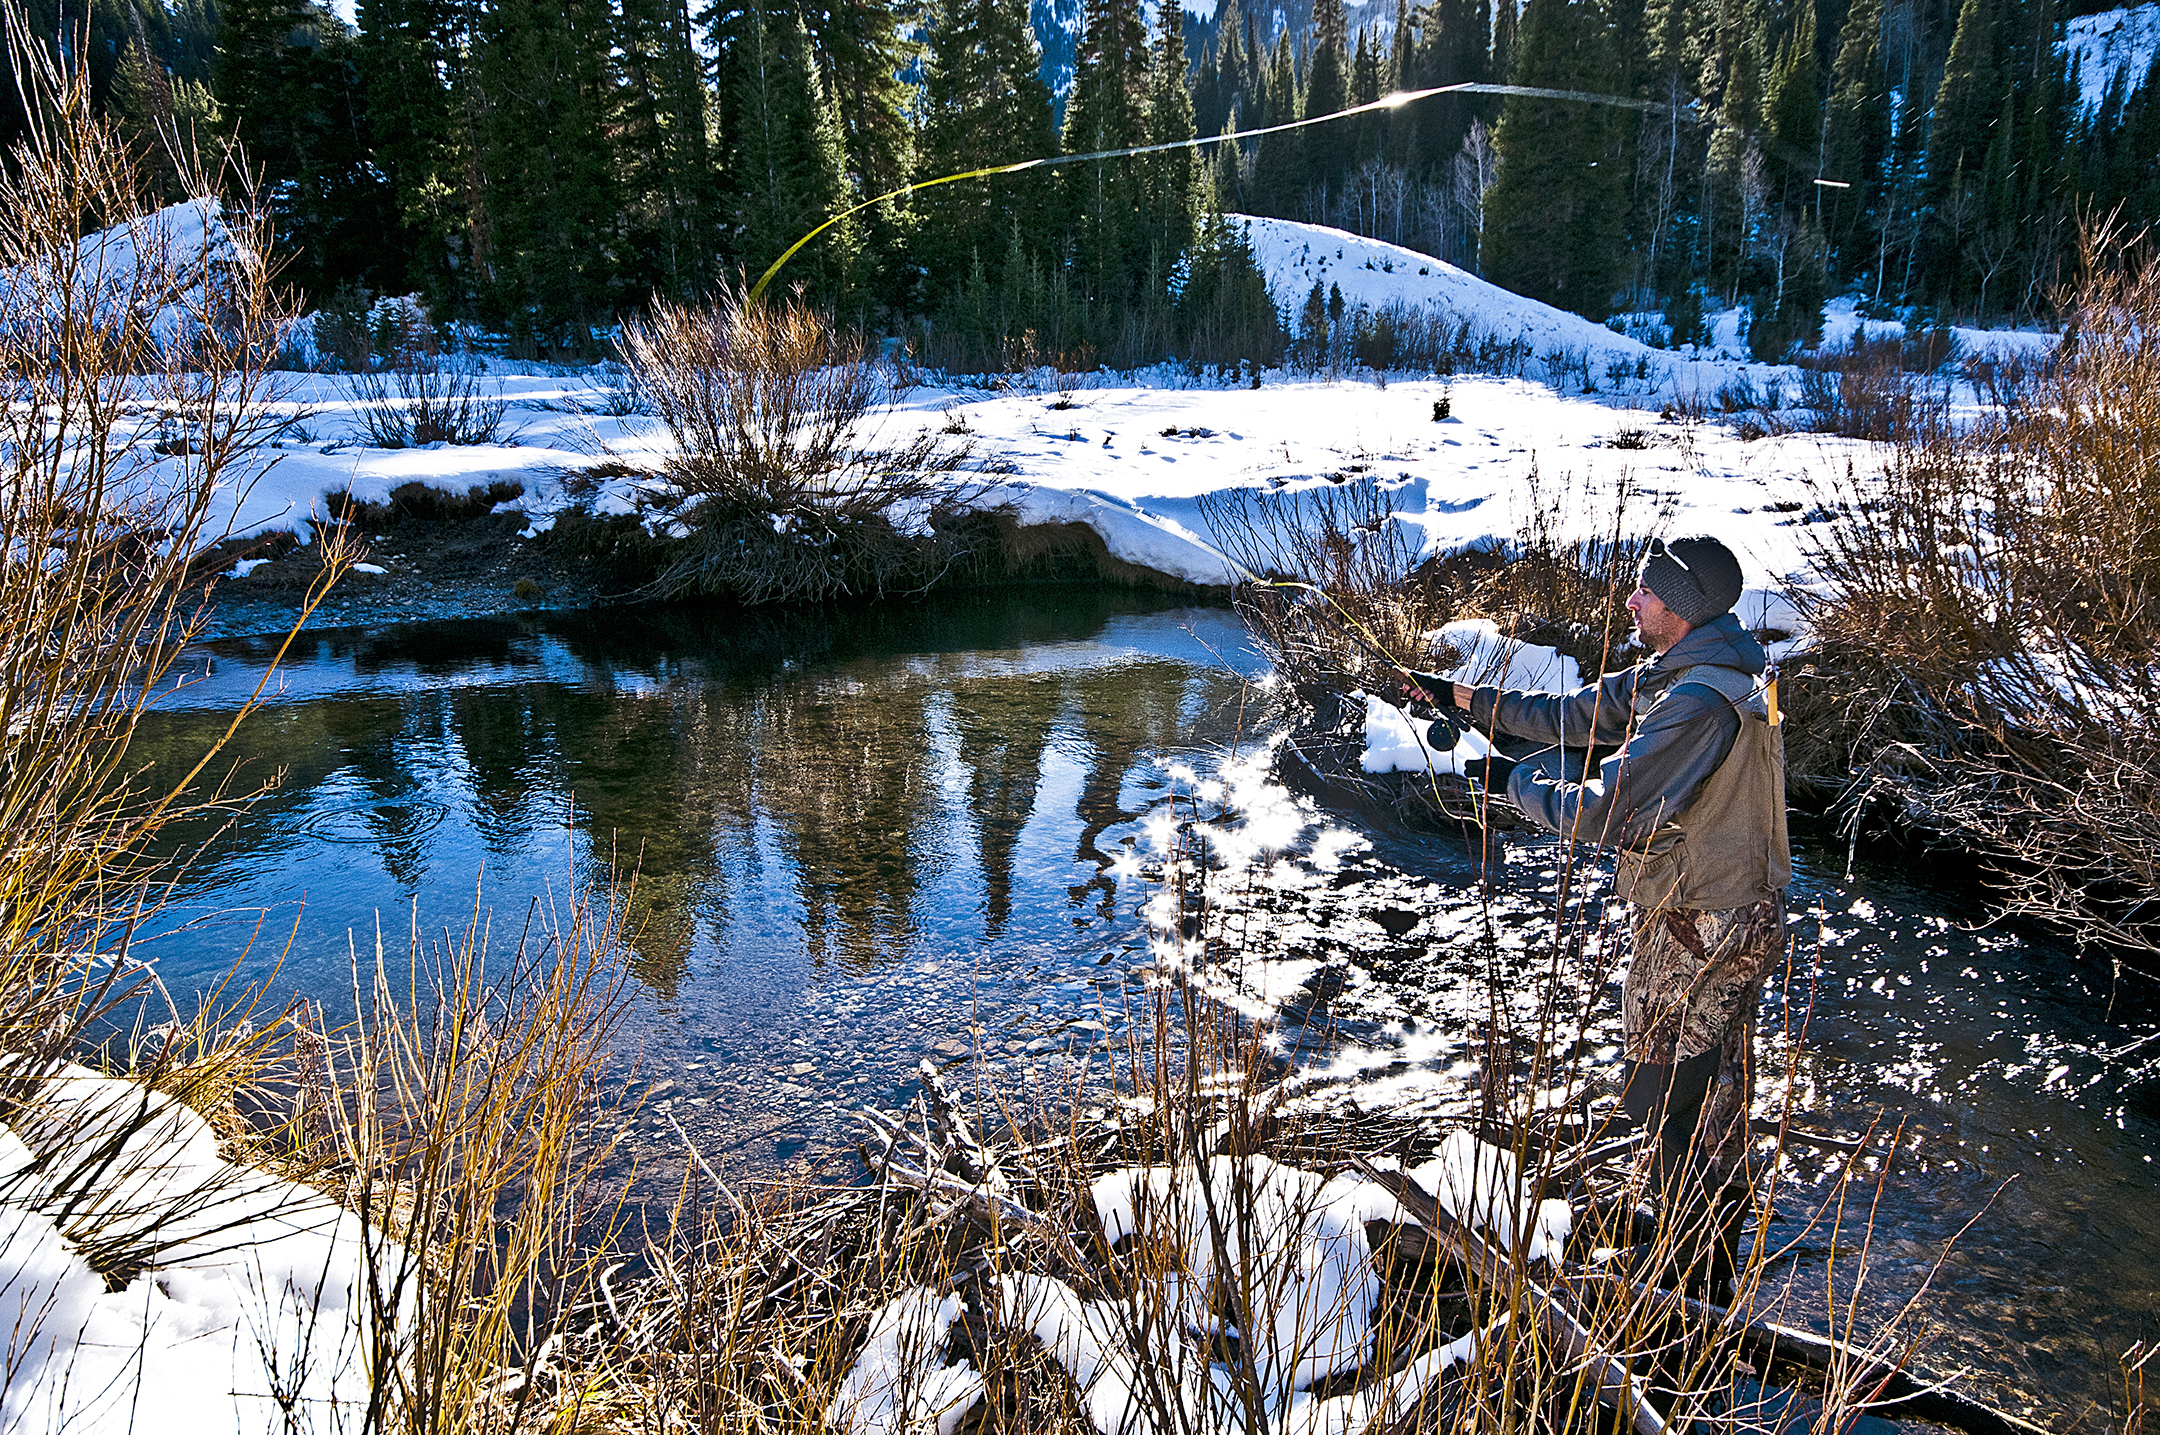 John Moore doing some fly fishing in Big Cottonwood Canyon